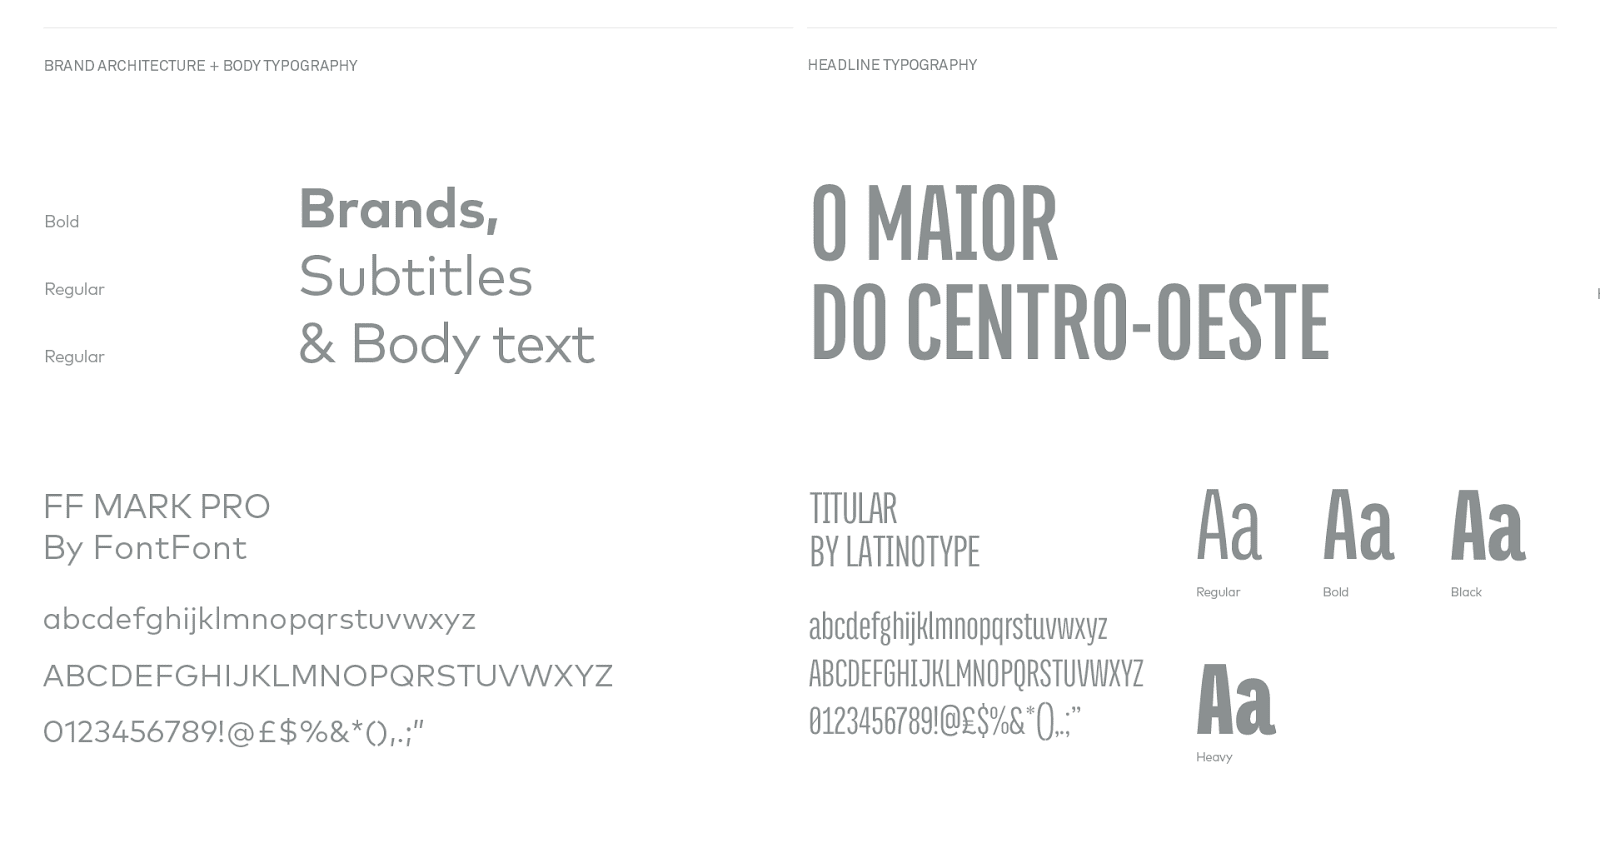 Page from the Brand Identity Manual for the Goias Soccer Team